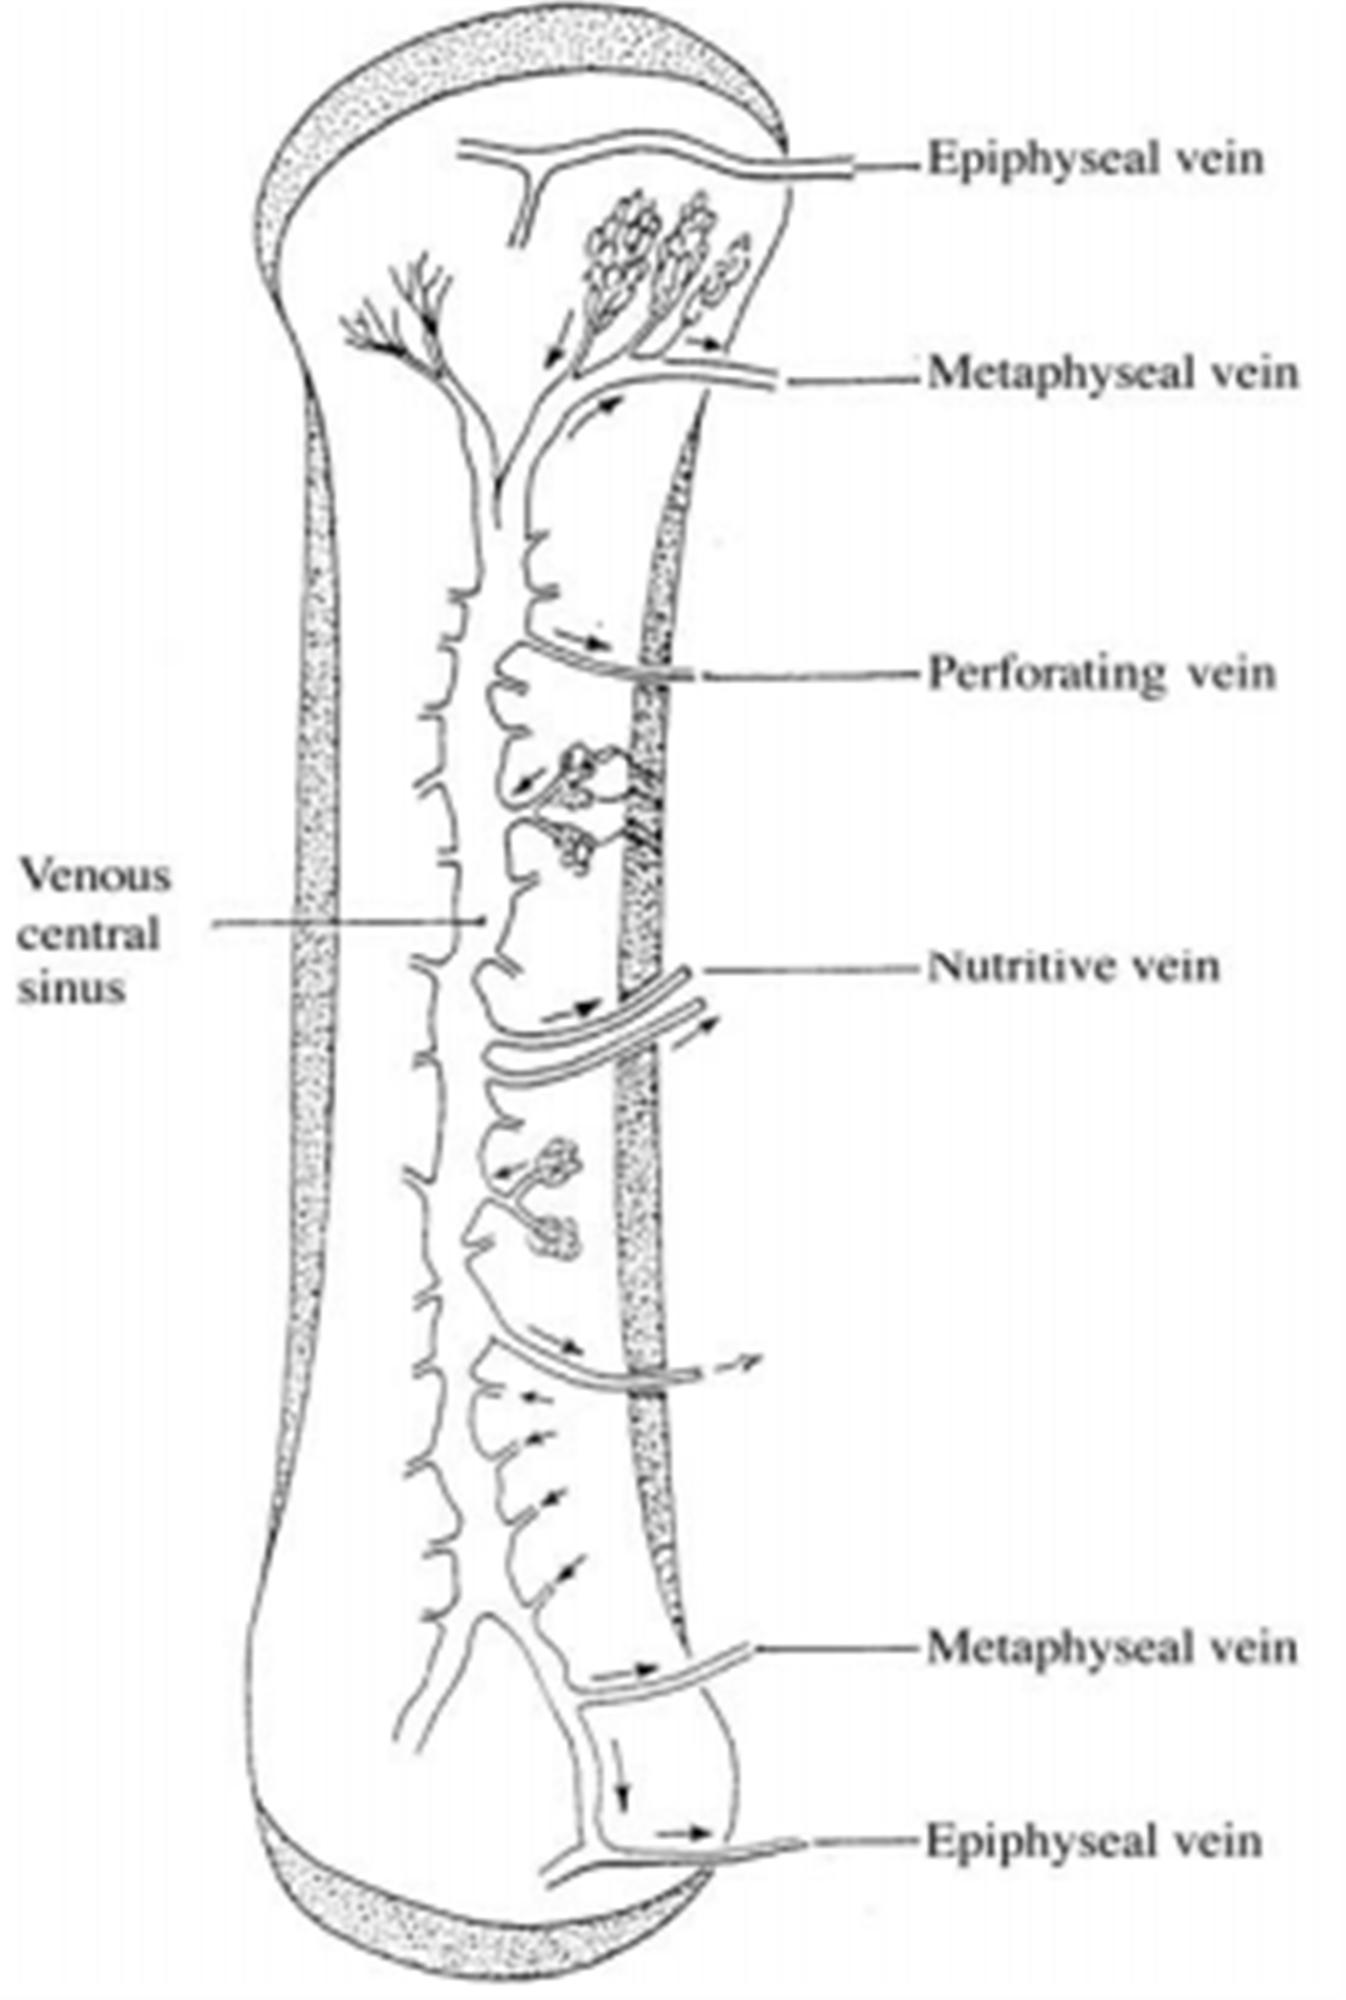 https://upload.orthobullets.com/topic/9005/images/venous vascularization of long bone.jpg